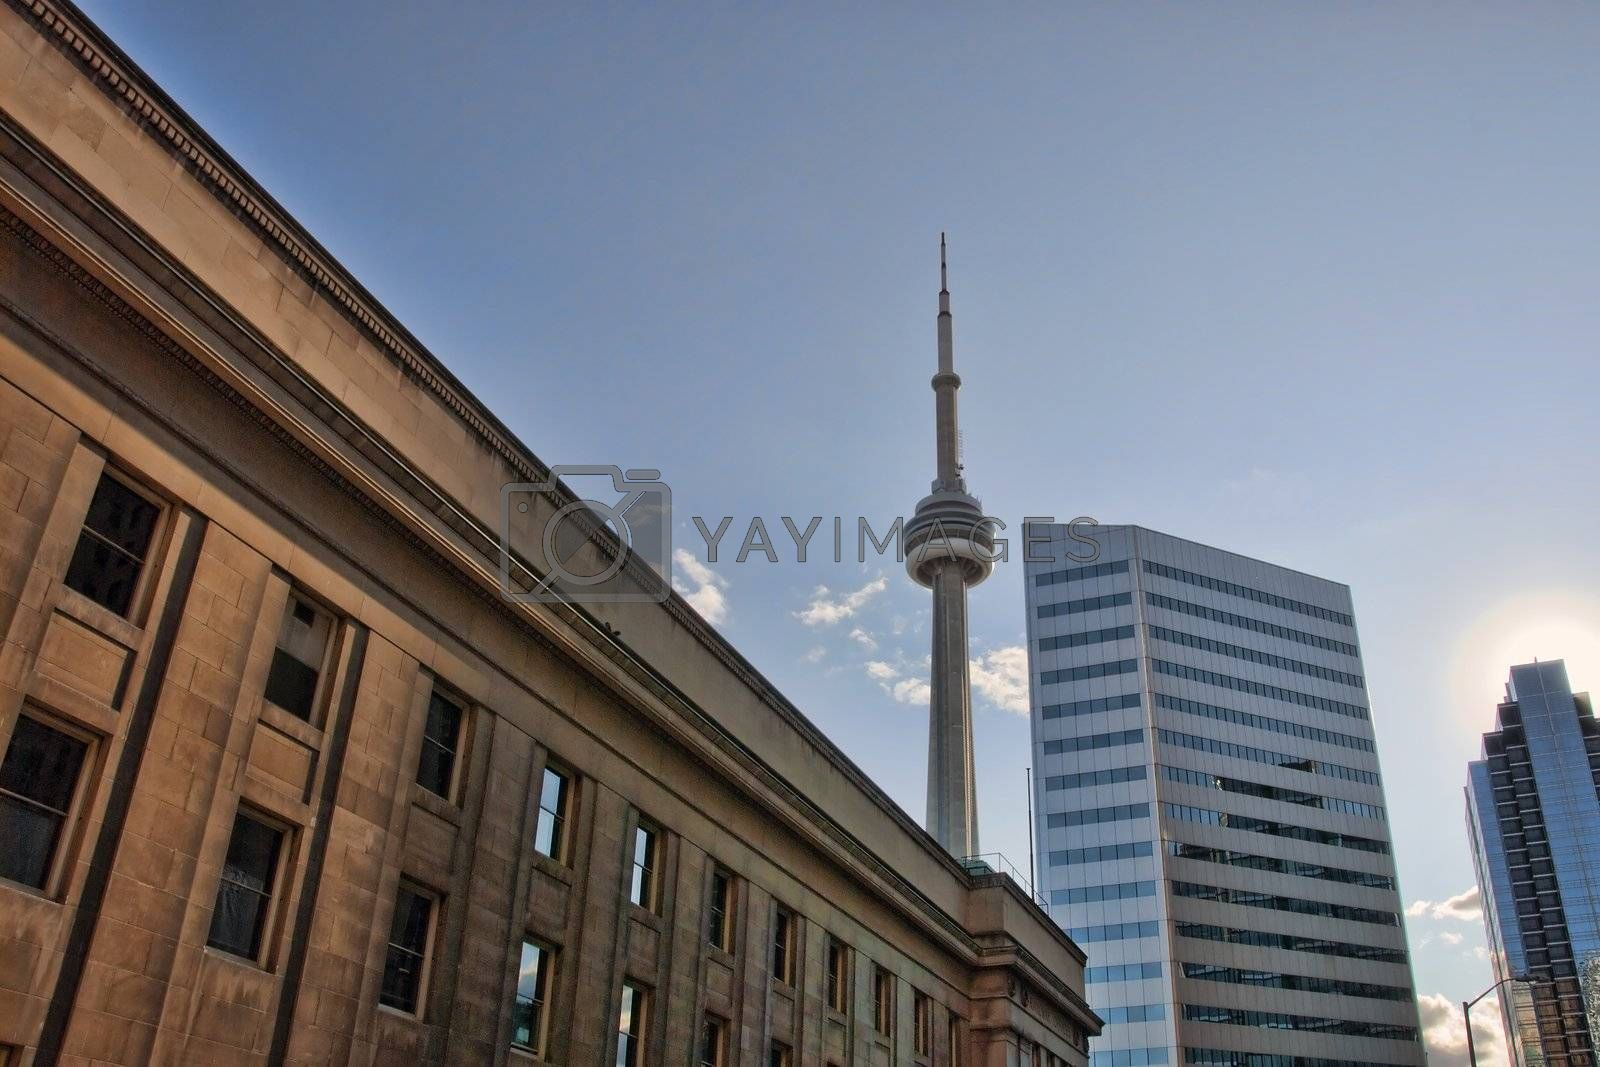 Architectural Detail of Toronto, Canada, August 2008 by jovannig